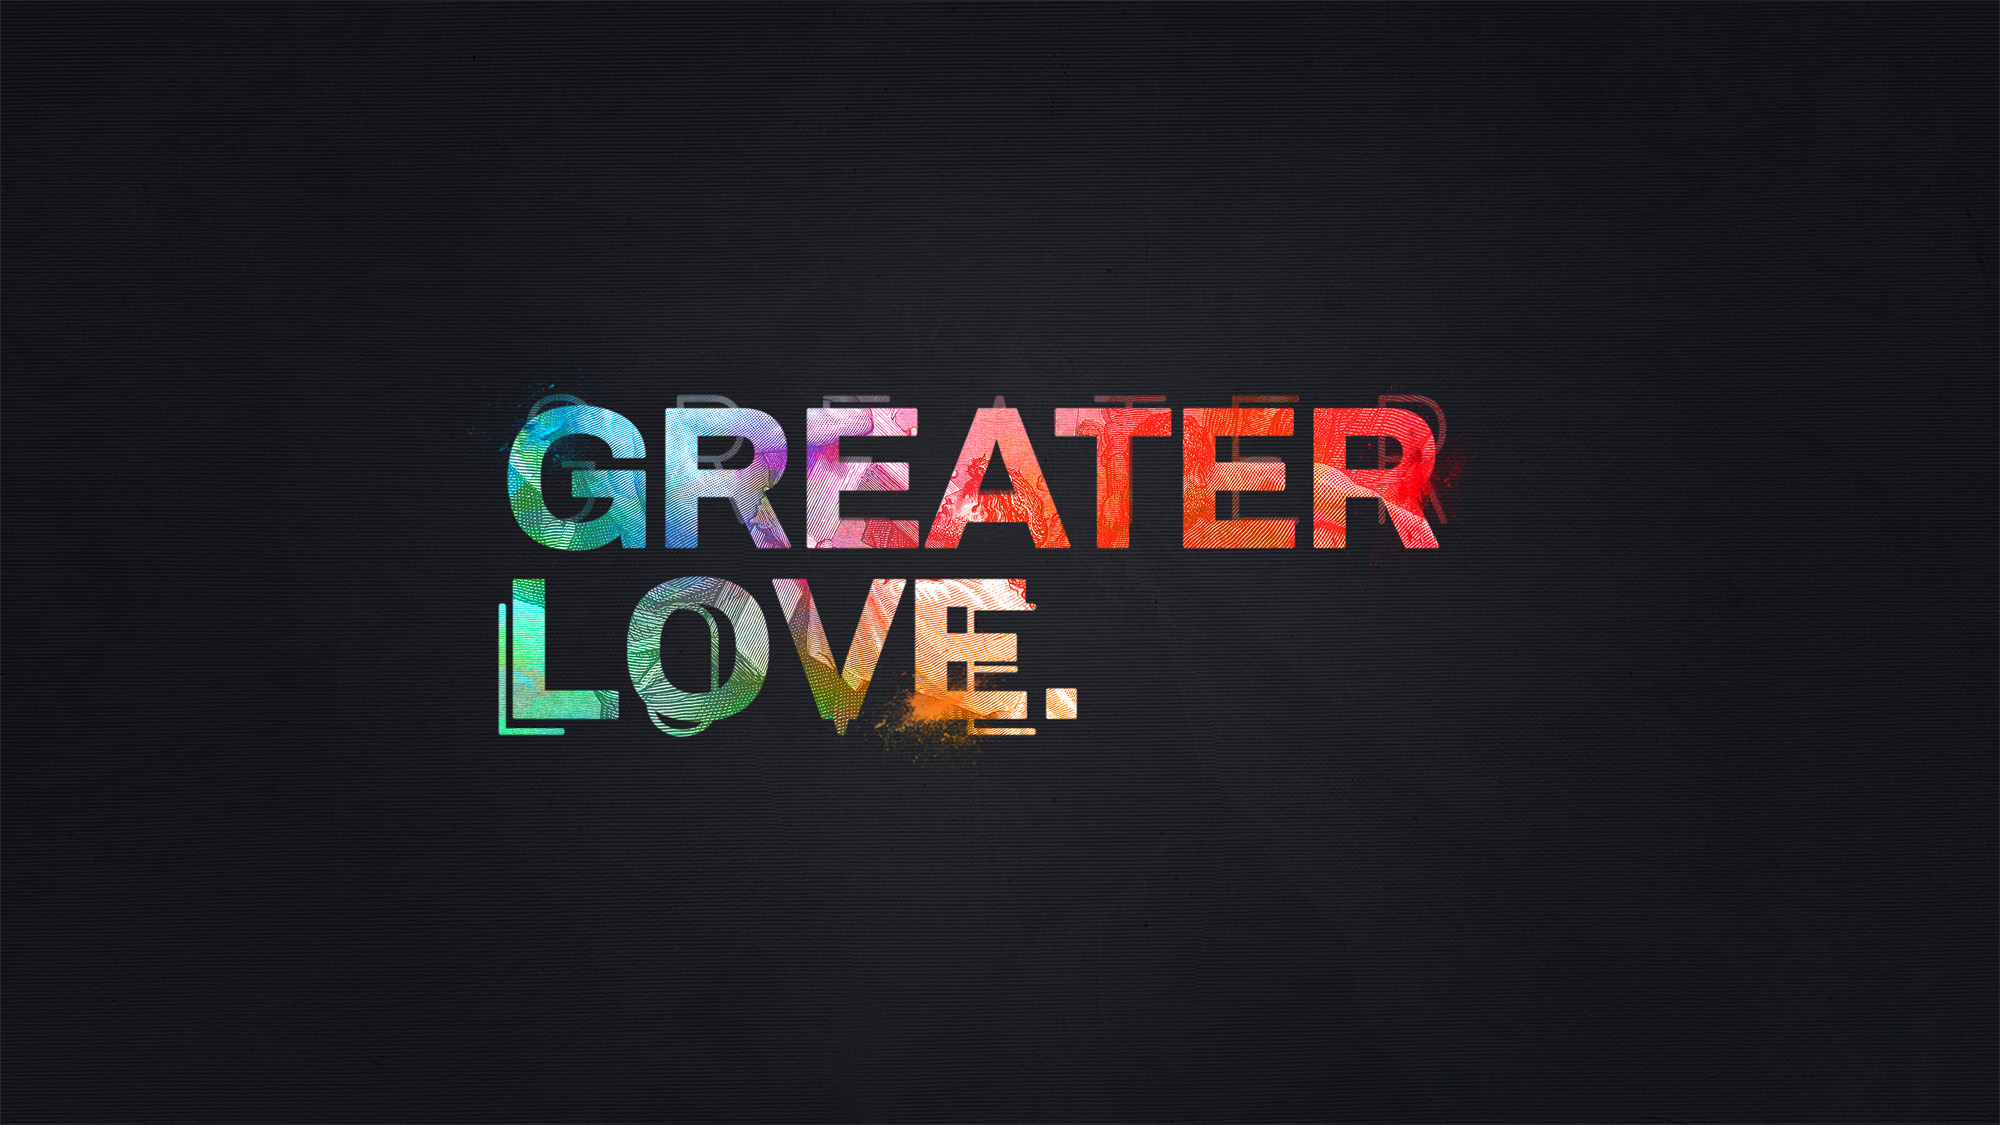 greater_love-title-2-Wide 16x9.jpg